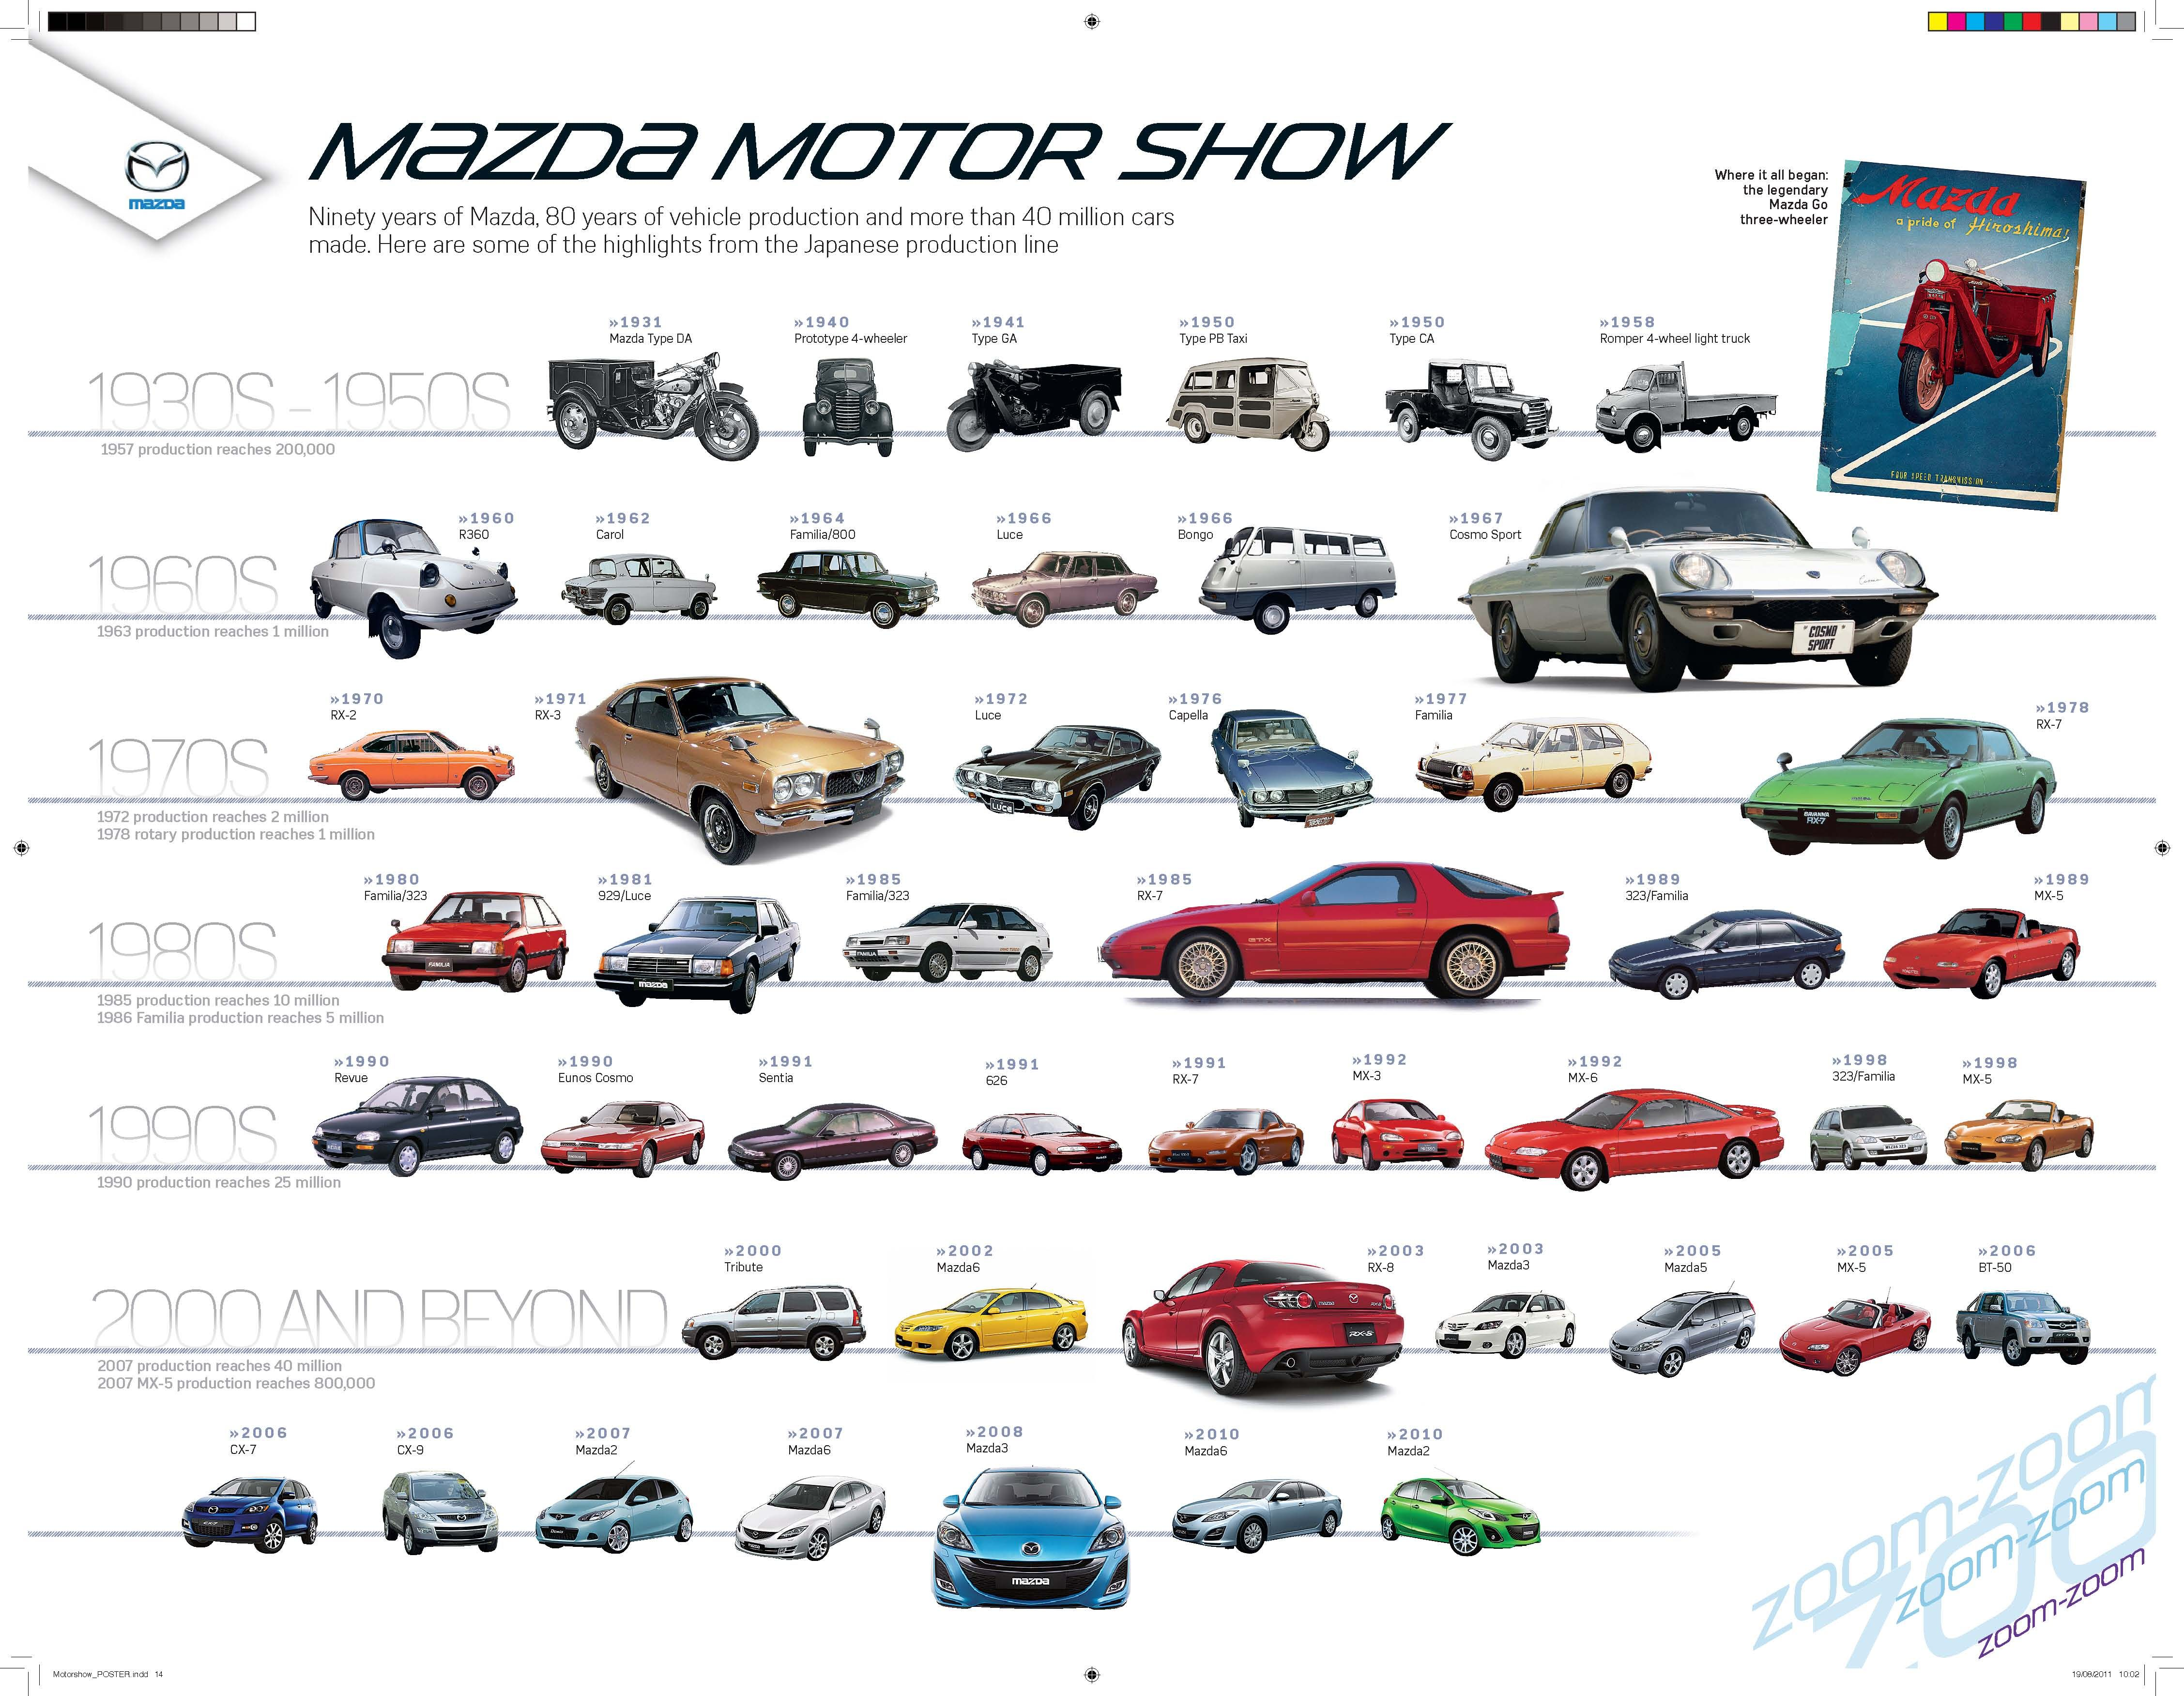 Most Mazda vehicles have a different name for the Japan